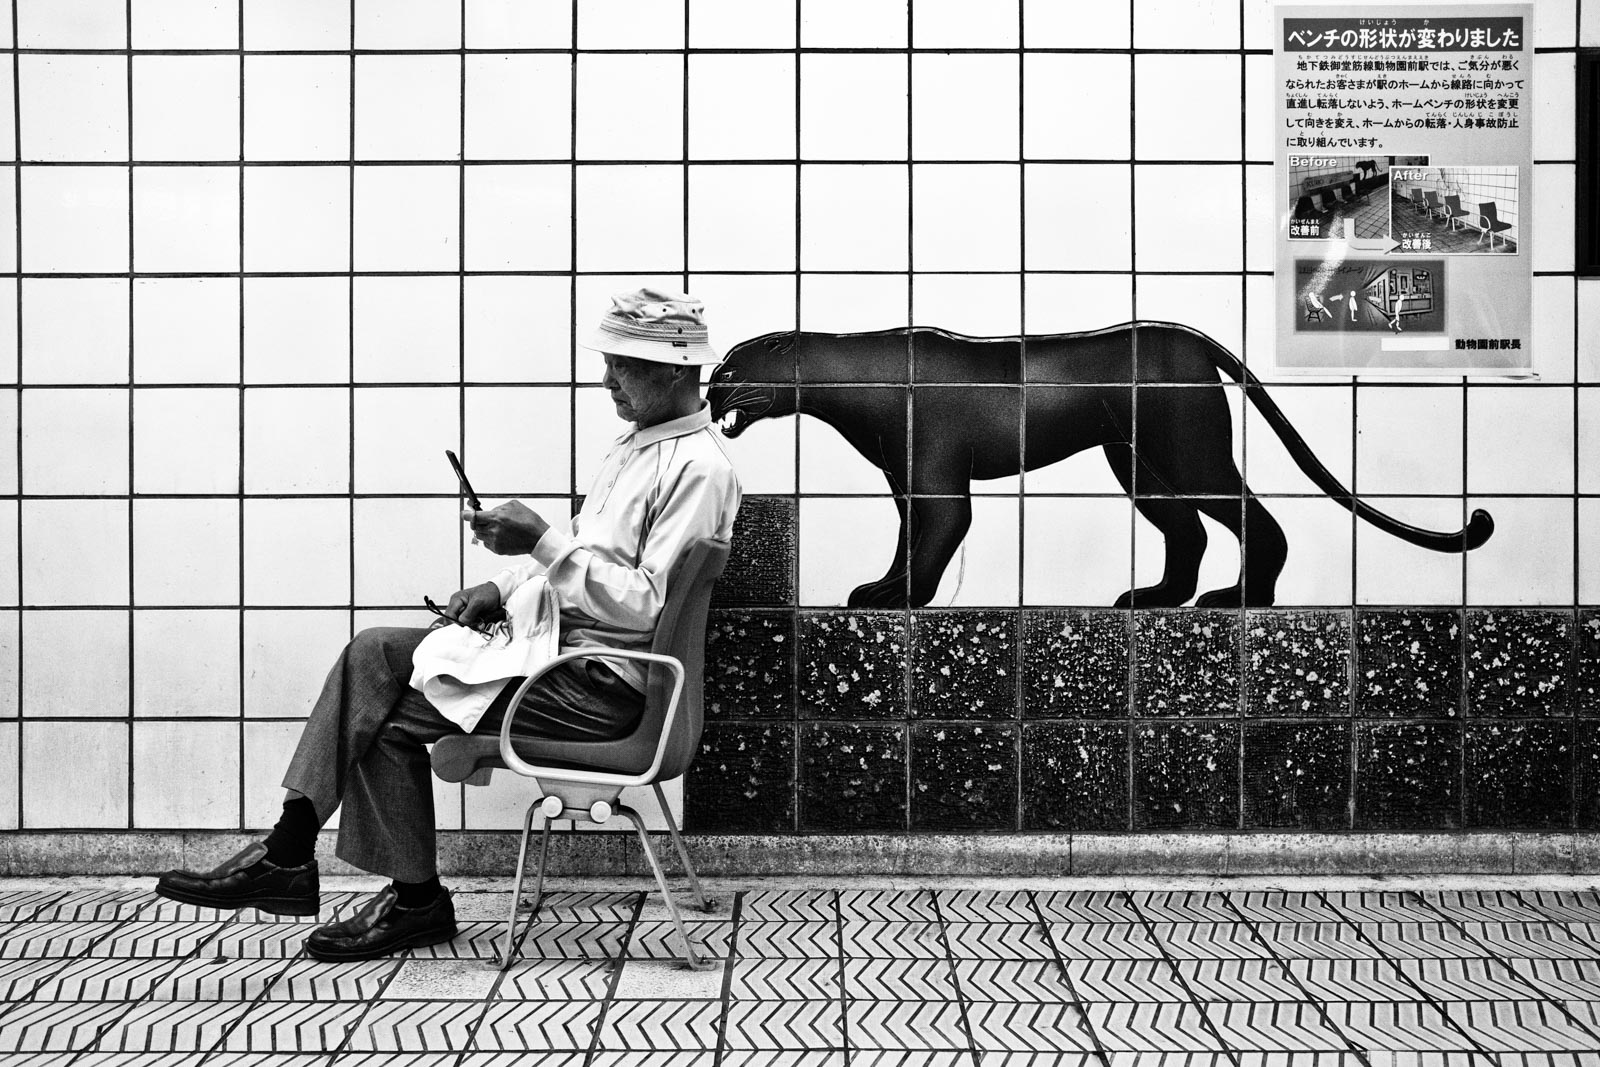 Man sitting in the metro system of Osaka next to a mural of a black panther. Street Photography by Victor Borst